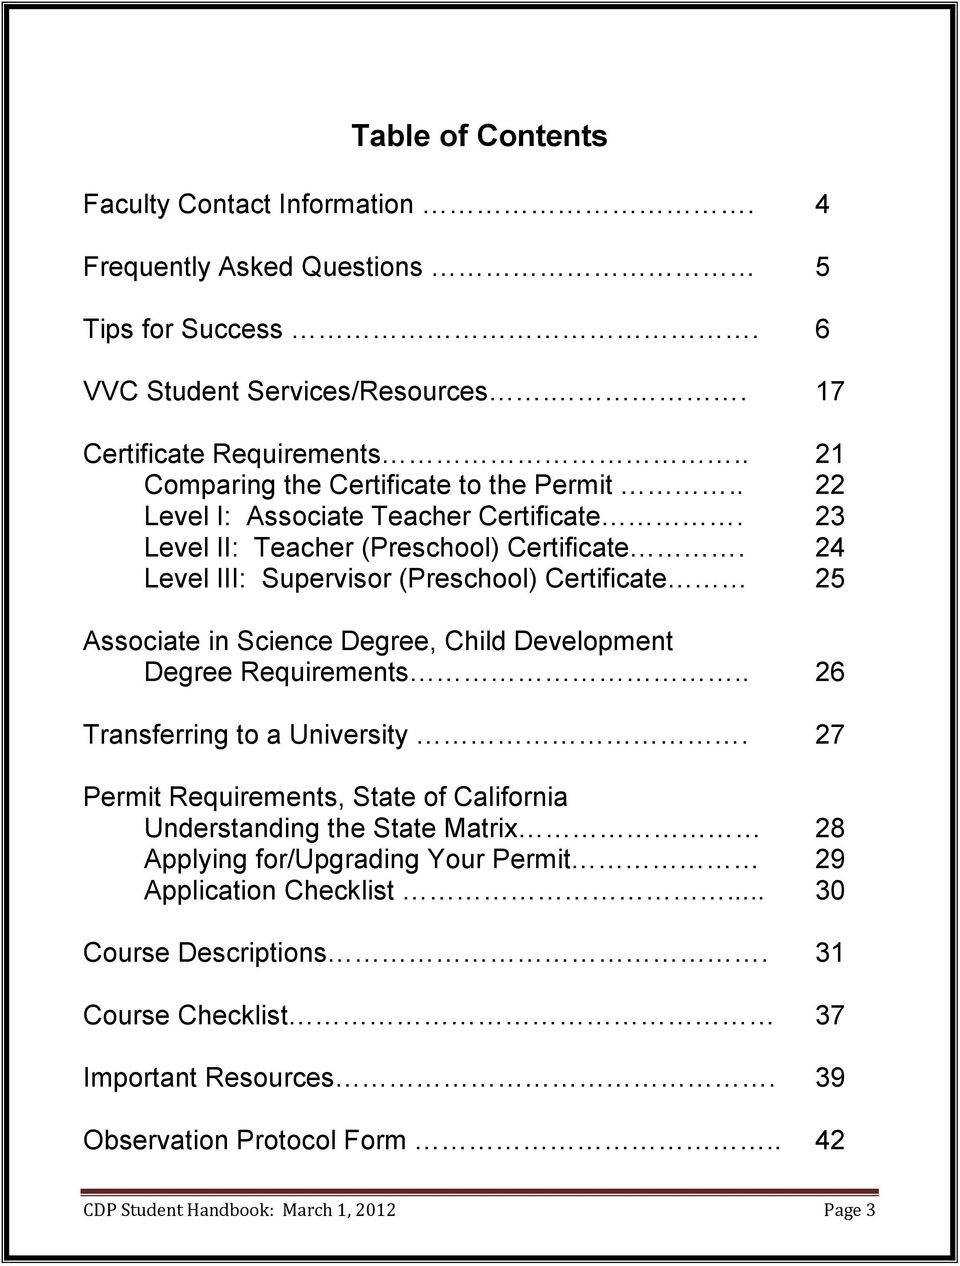 24 Level III: Supervisor (Preschool) Certificate 25 Associate in Science Degree, Child Development Degree Requirements.. 26 Transferring to a University.